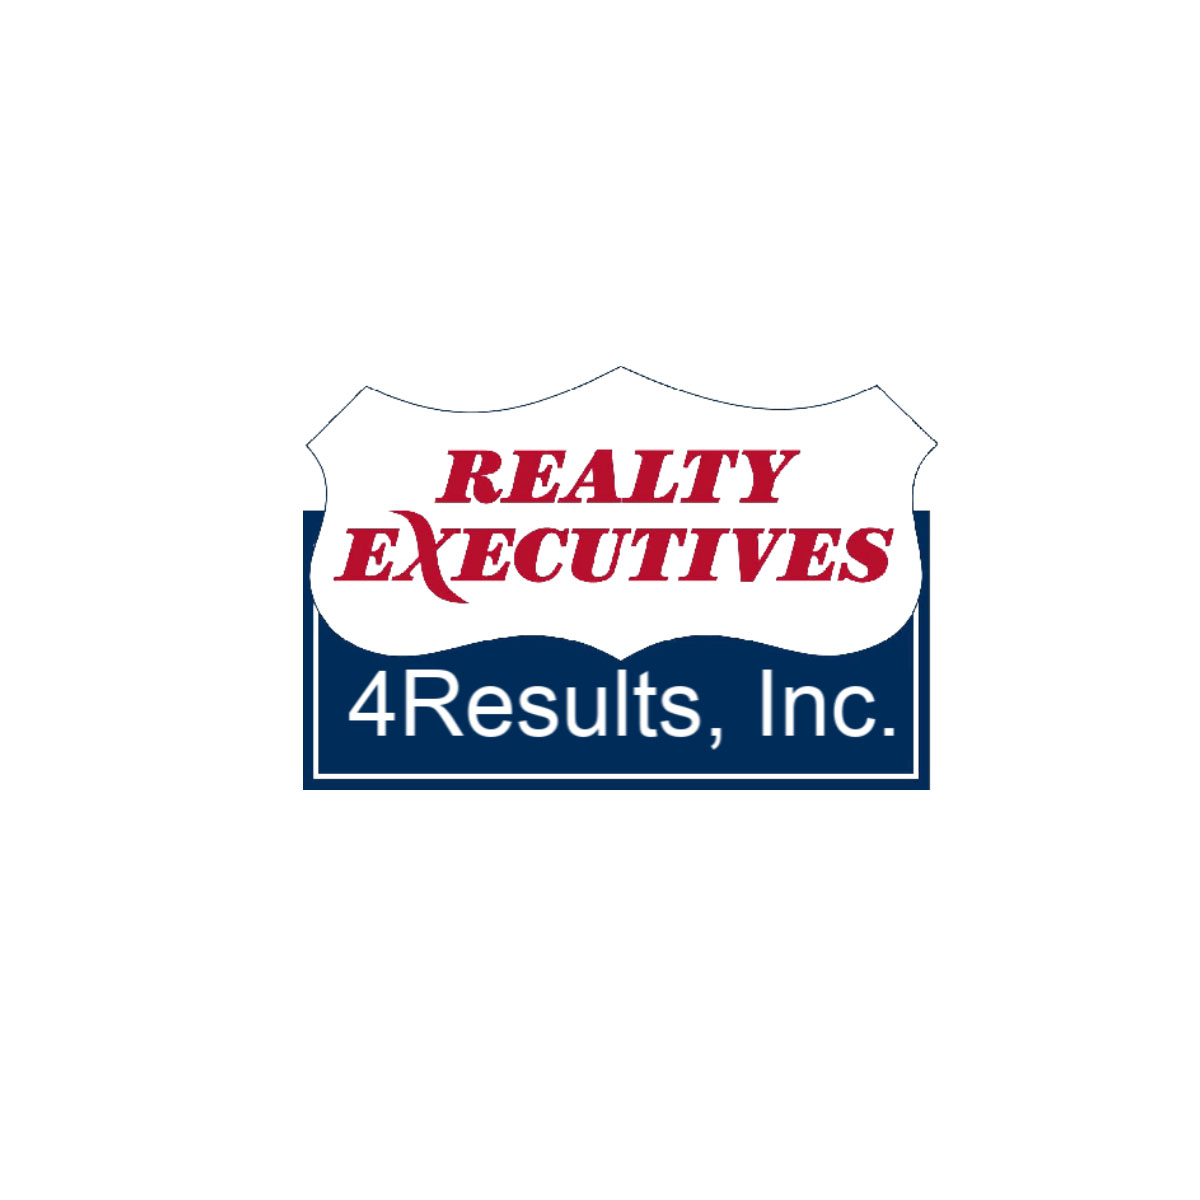 Realty Executives 4 Results  Inc. (30th Ave)